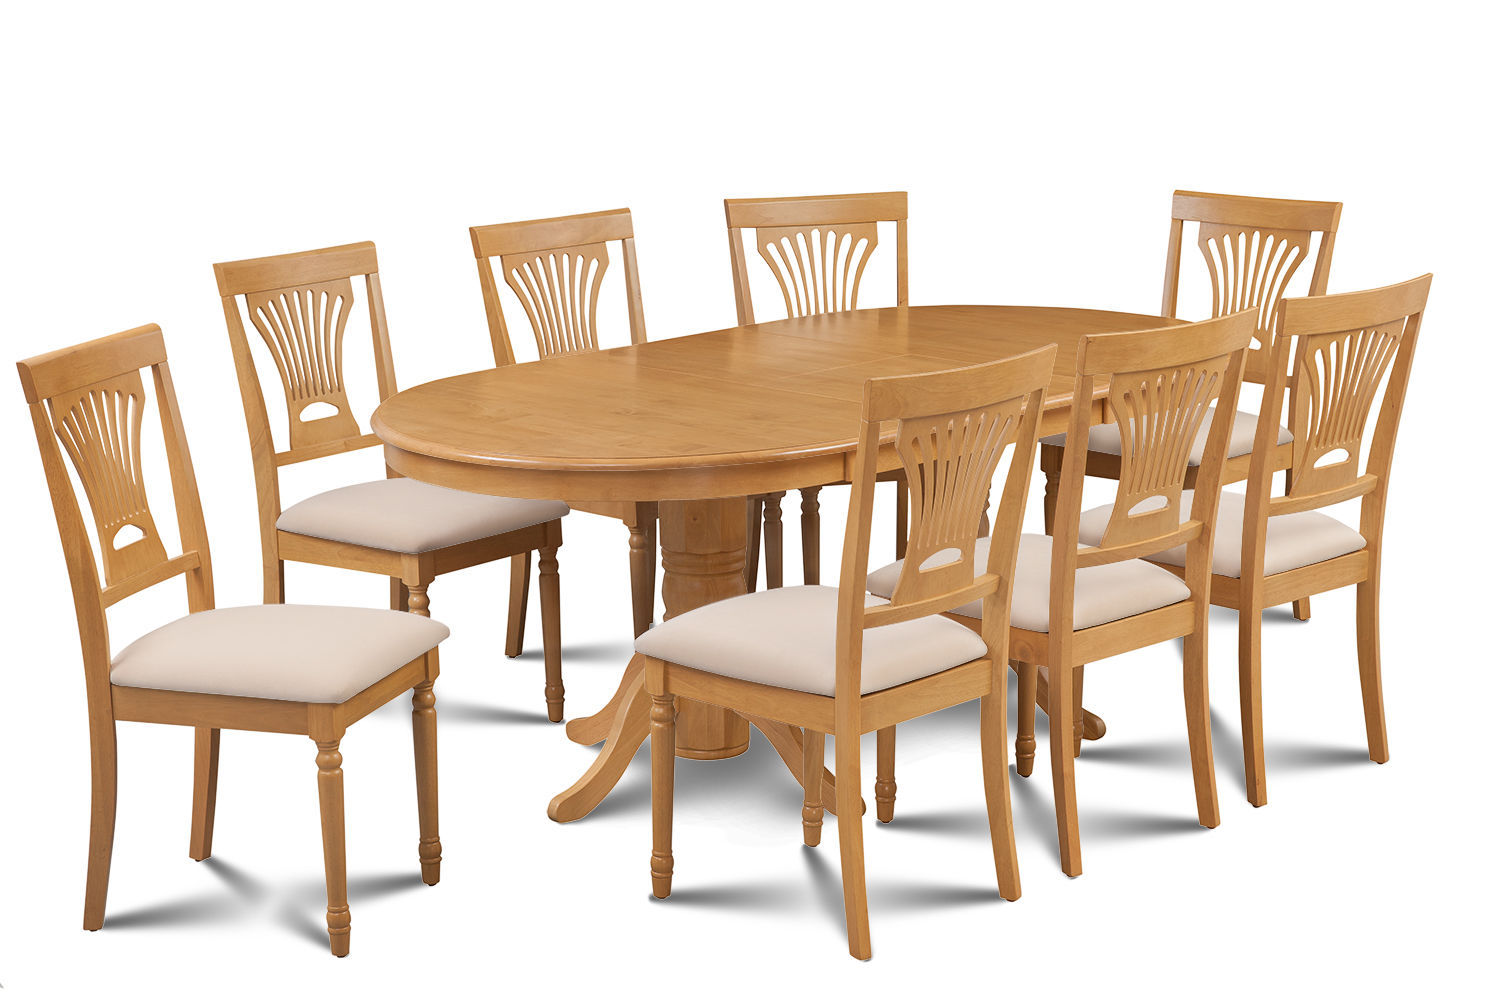 9 piece oval dining room table set w 8 soft padded chairs for 9 pc dining room table sets